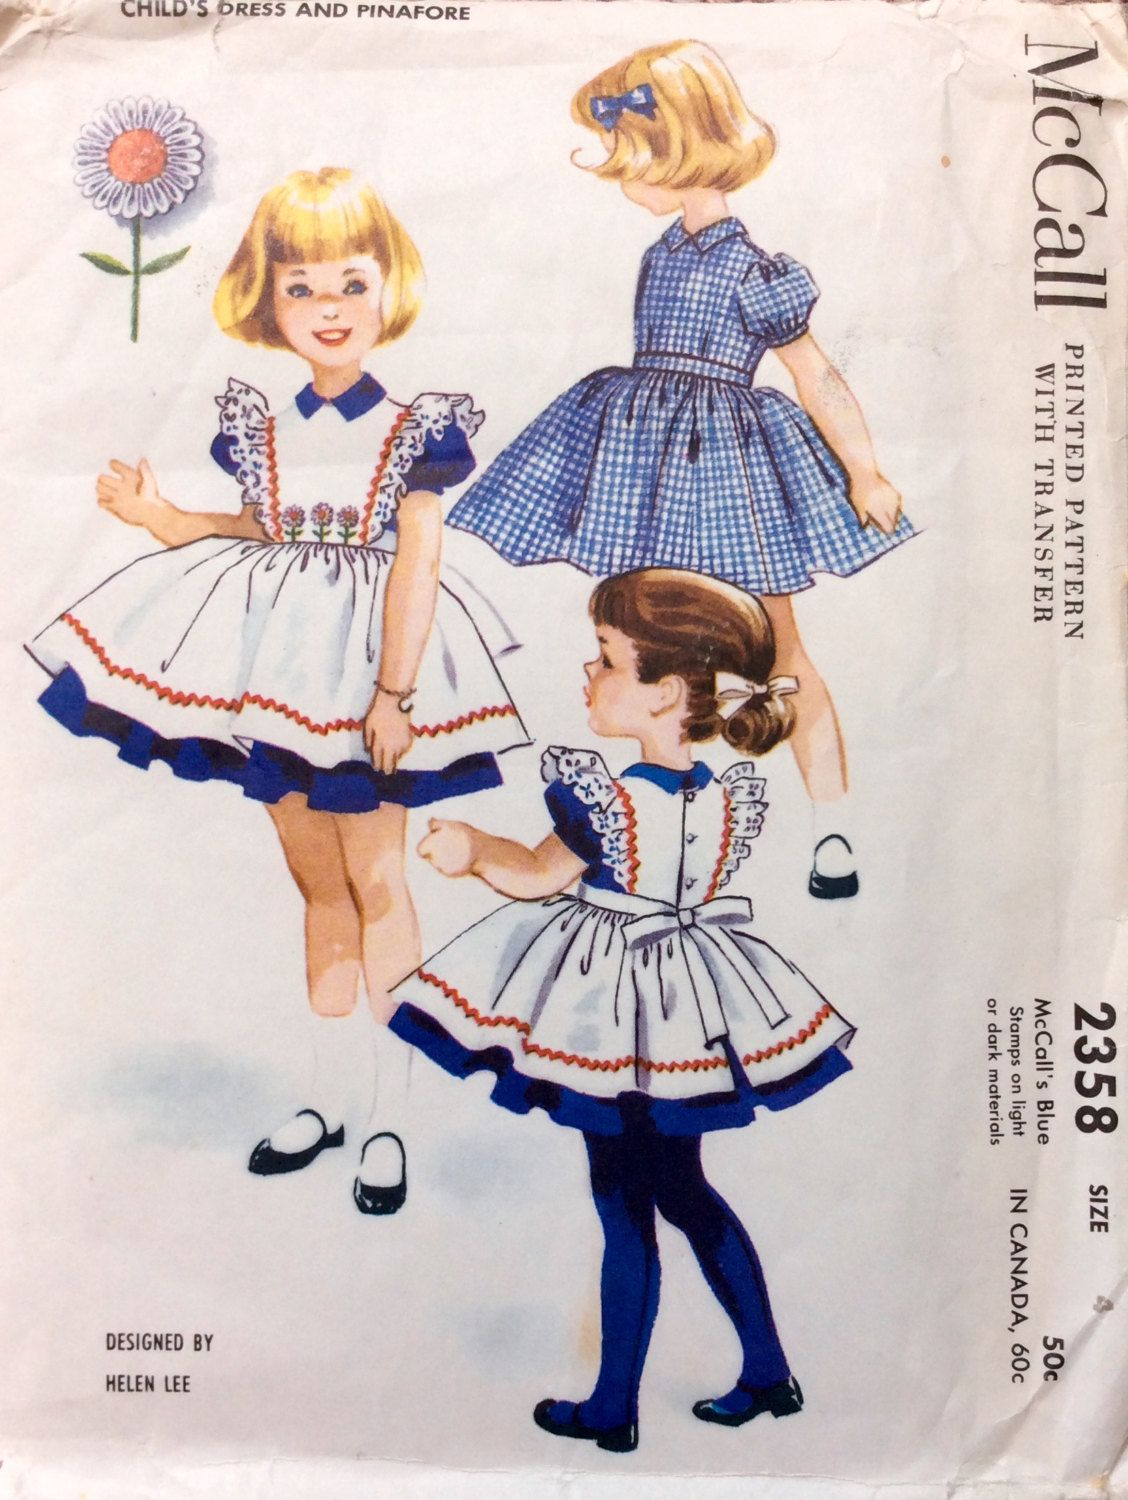 Mccall childus dress u pinafore childrenus sewing patterns